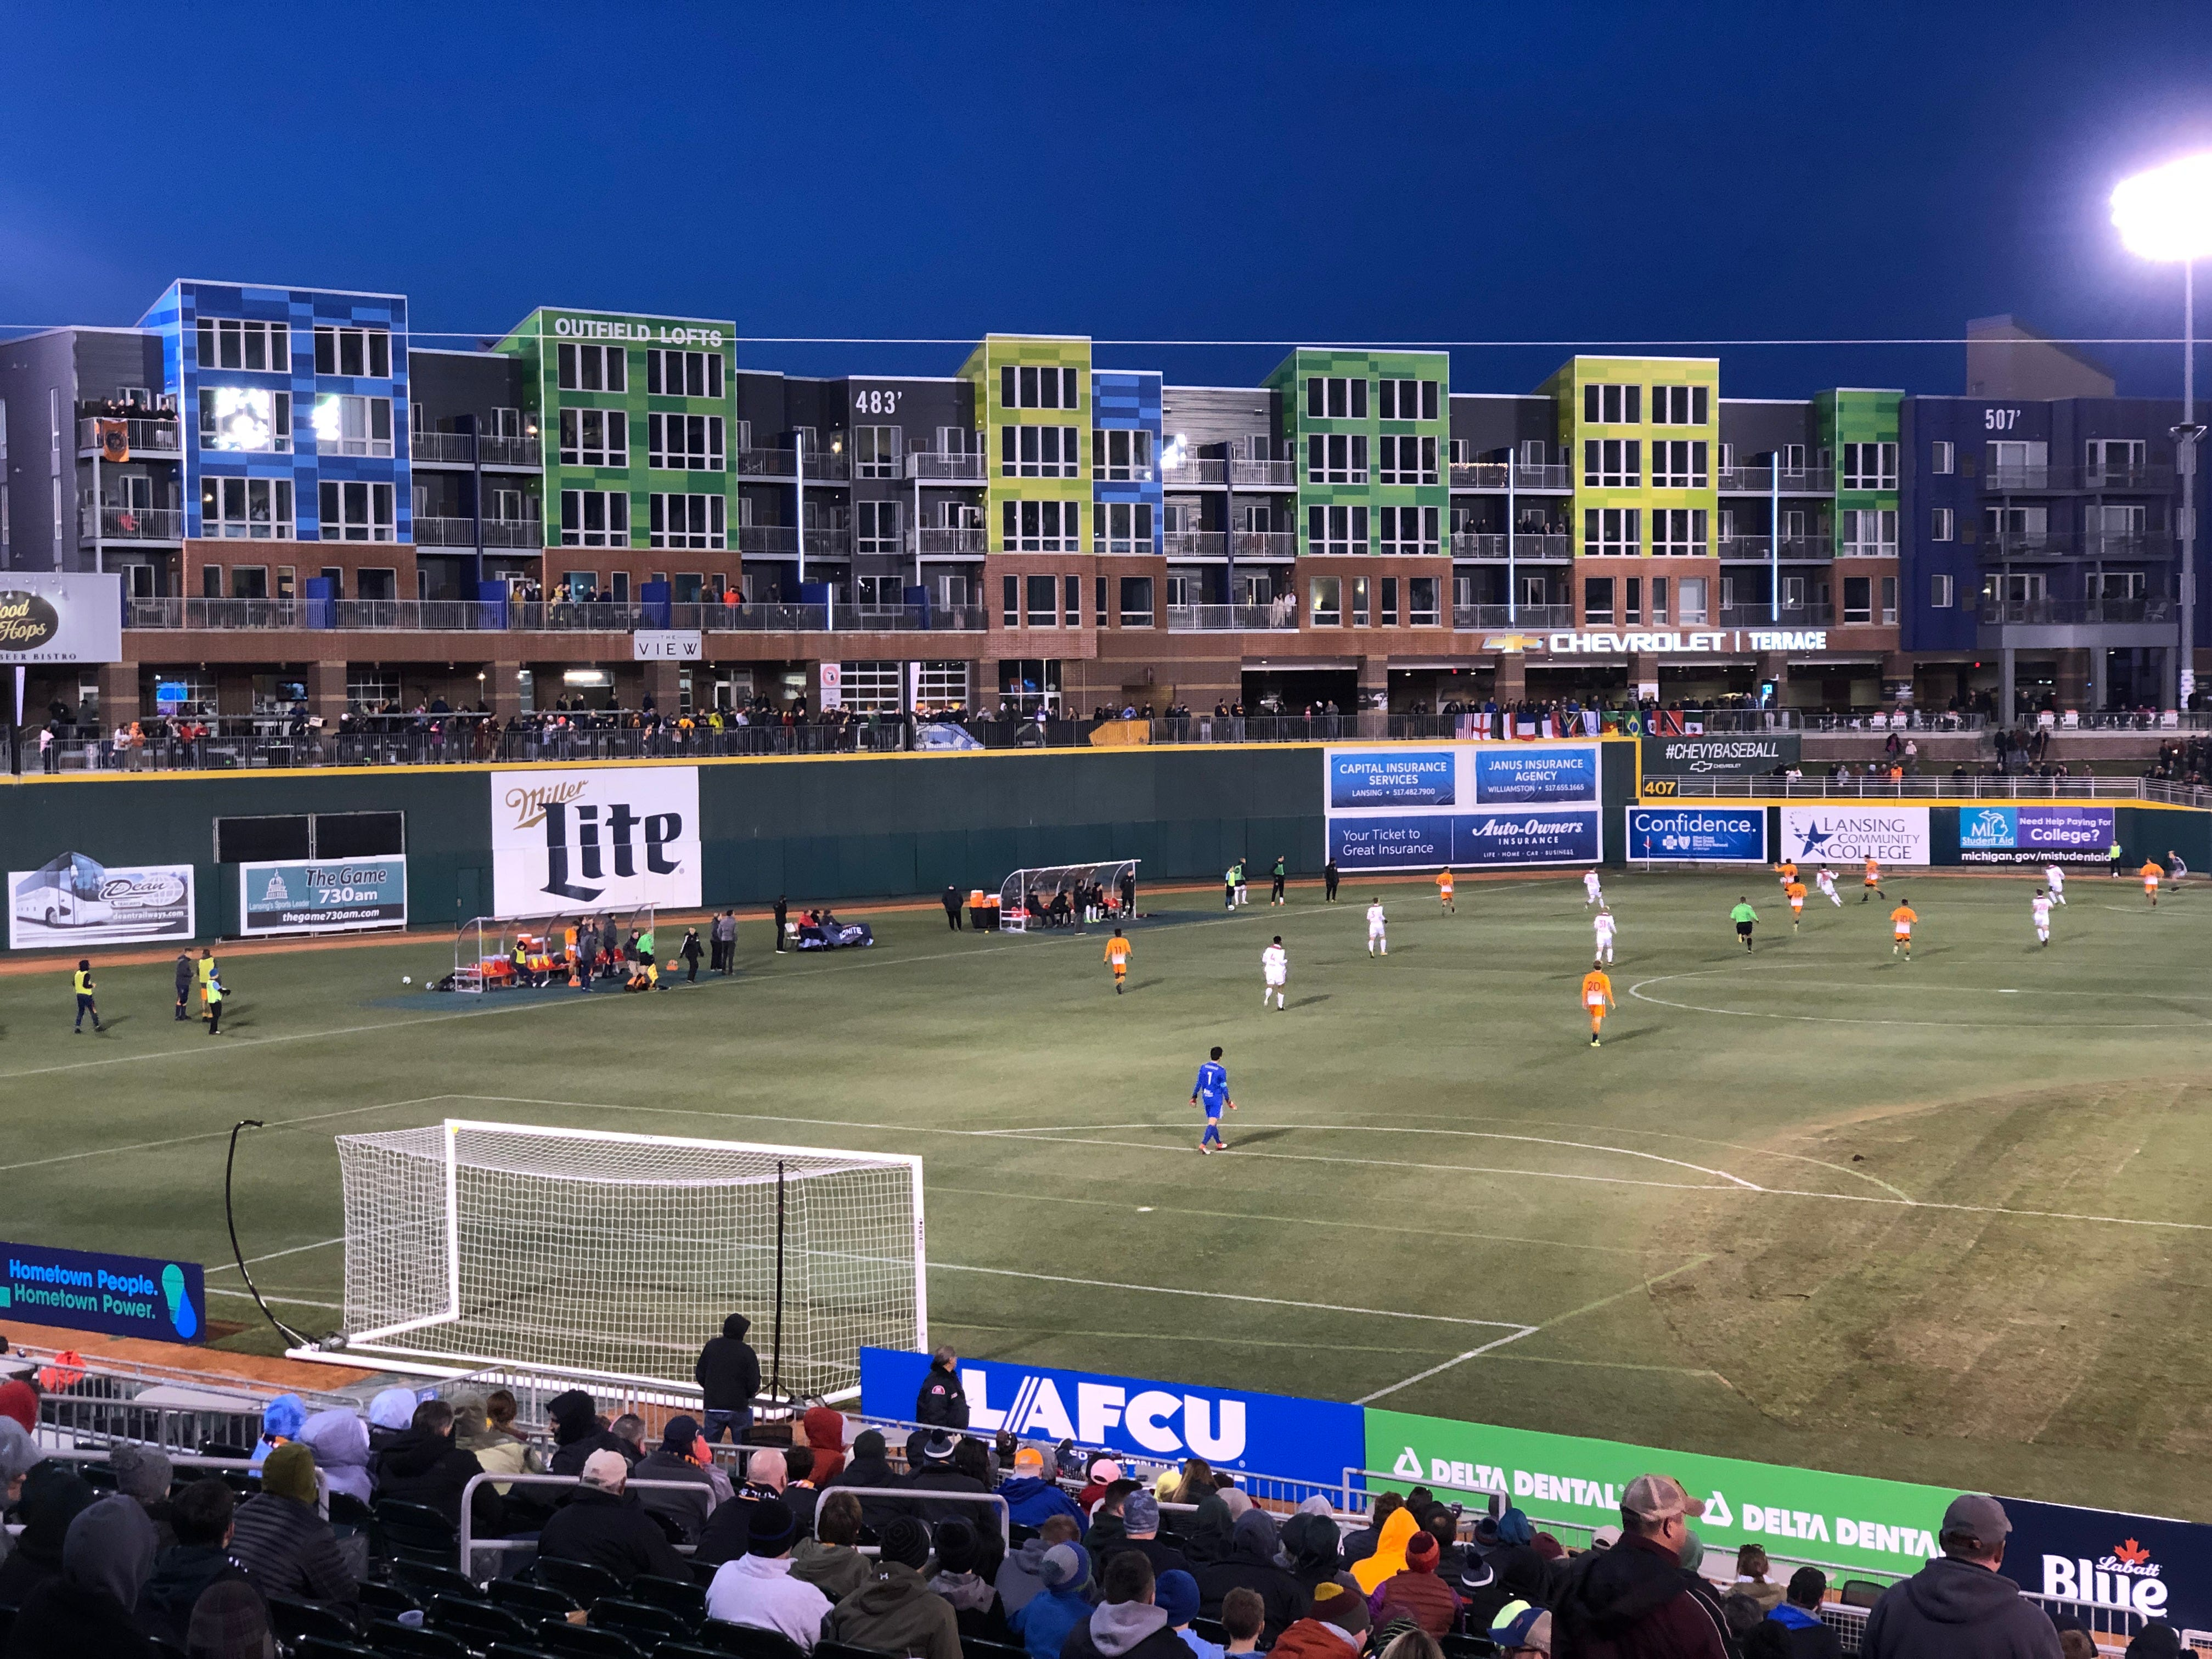 Couch: Lansing Ignite's home debut shows, for fans, soccer in a baseball stadium can work